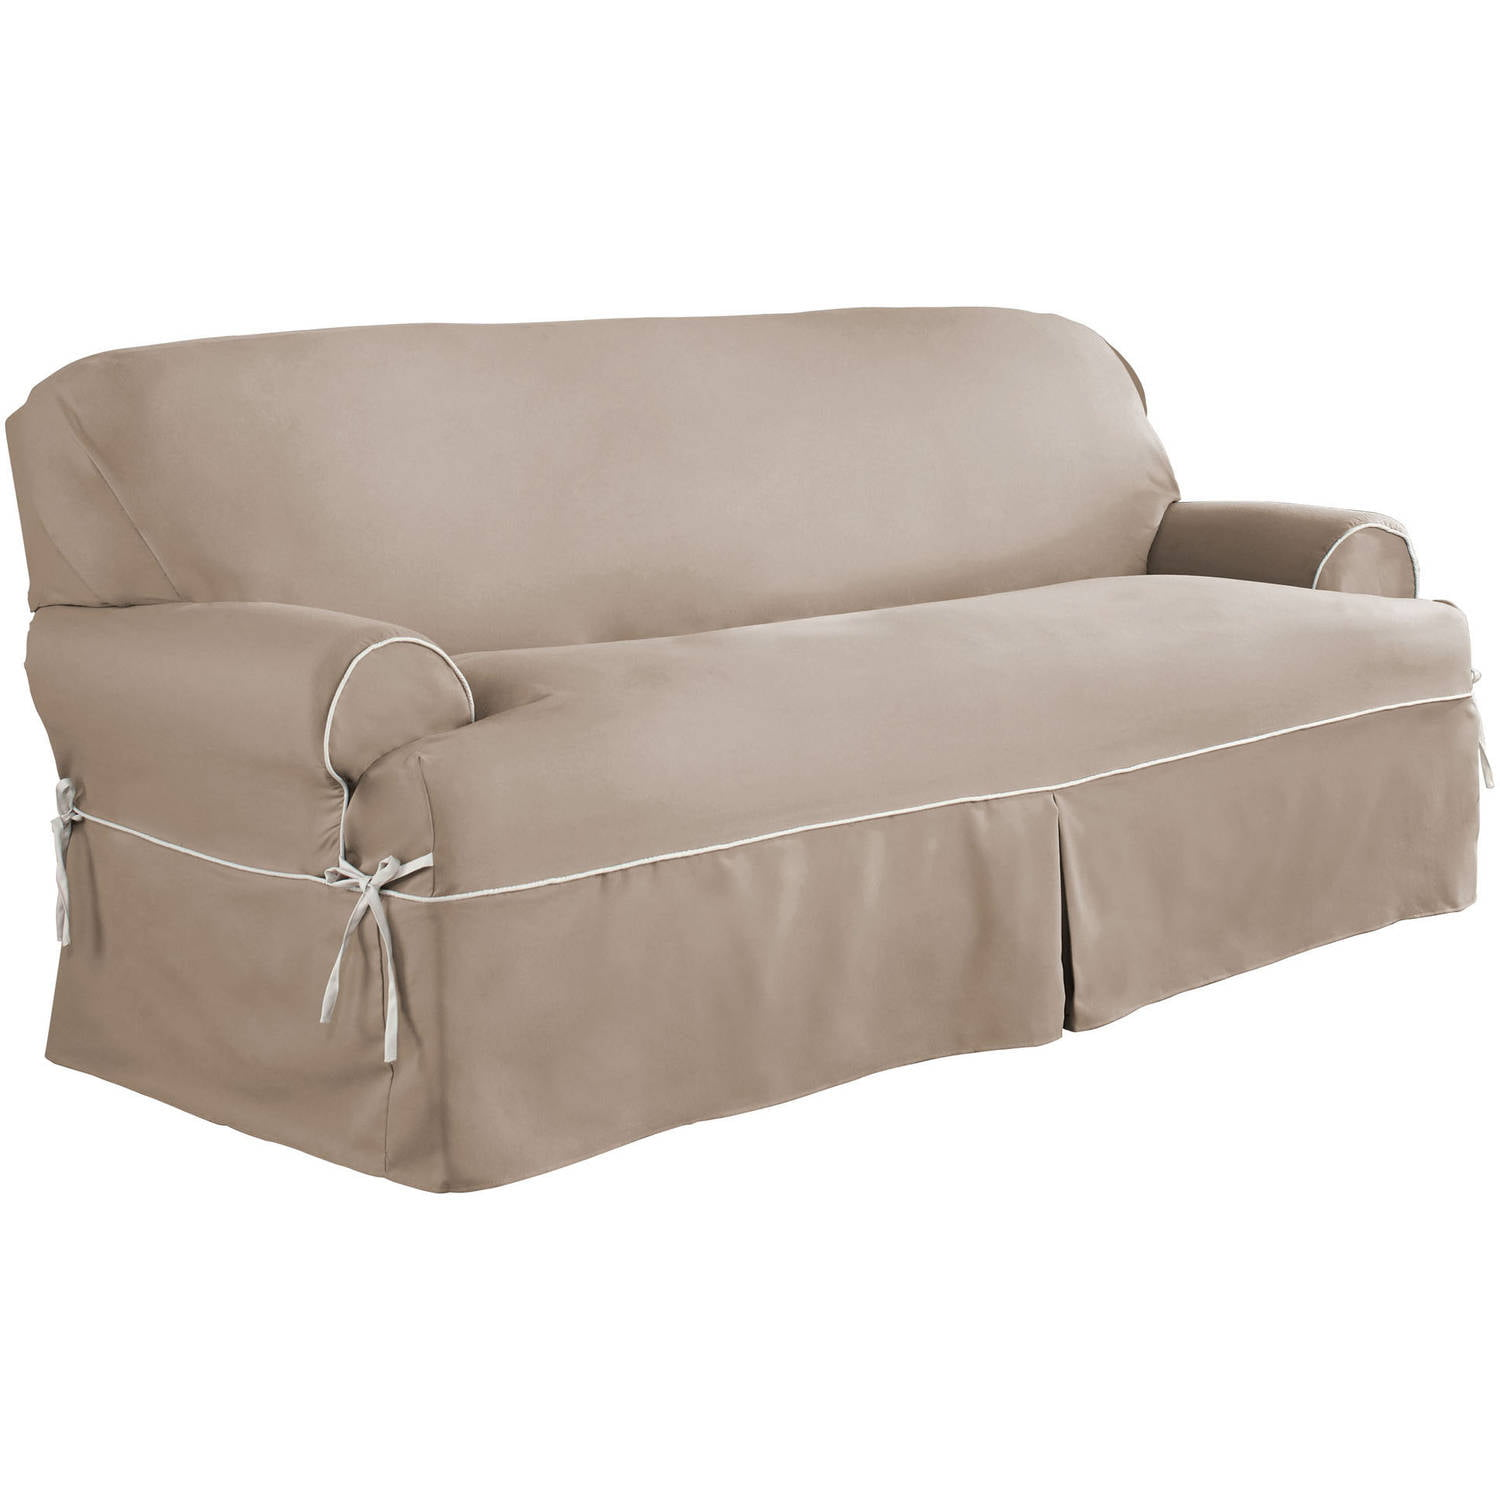 Slipcover Sofa Set: Serta Relaxed Fit Duck Furniture Slipcover, Sofa 1-Piece T